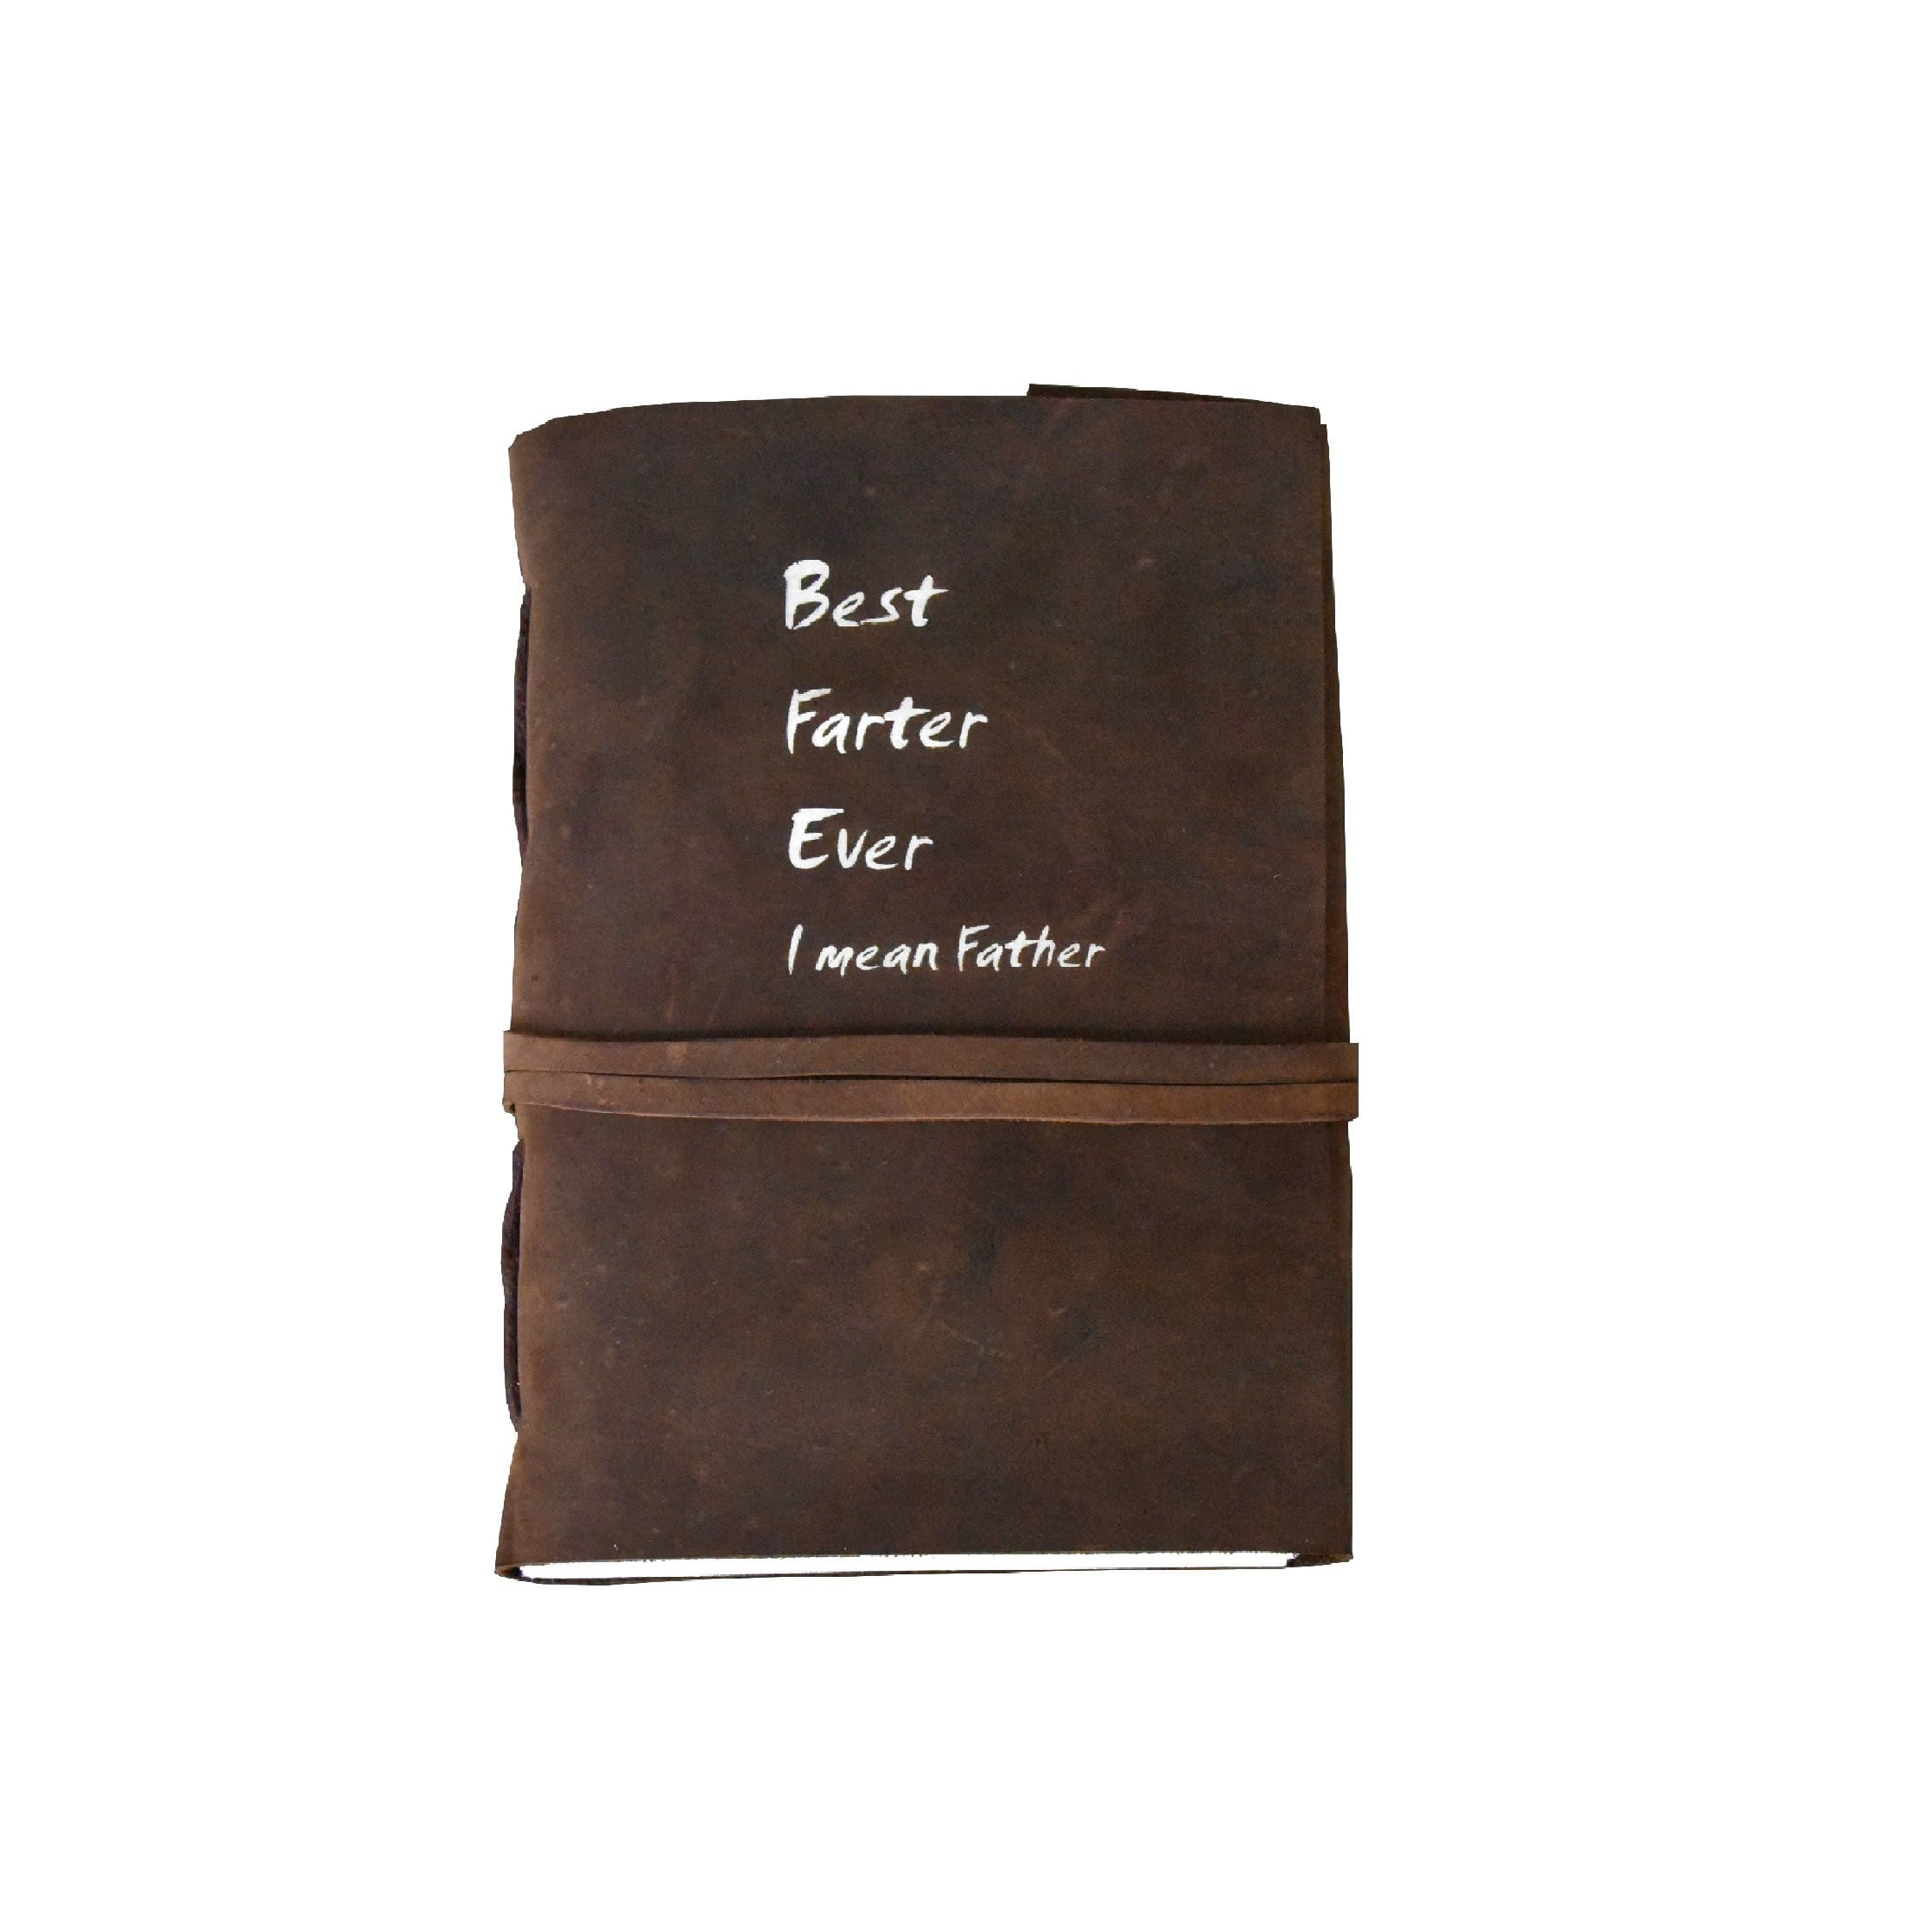 Best Farter Ever Funny Quotes DAD Personalise Leather Journal - BohoEntice